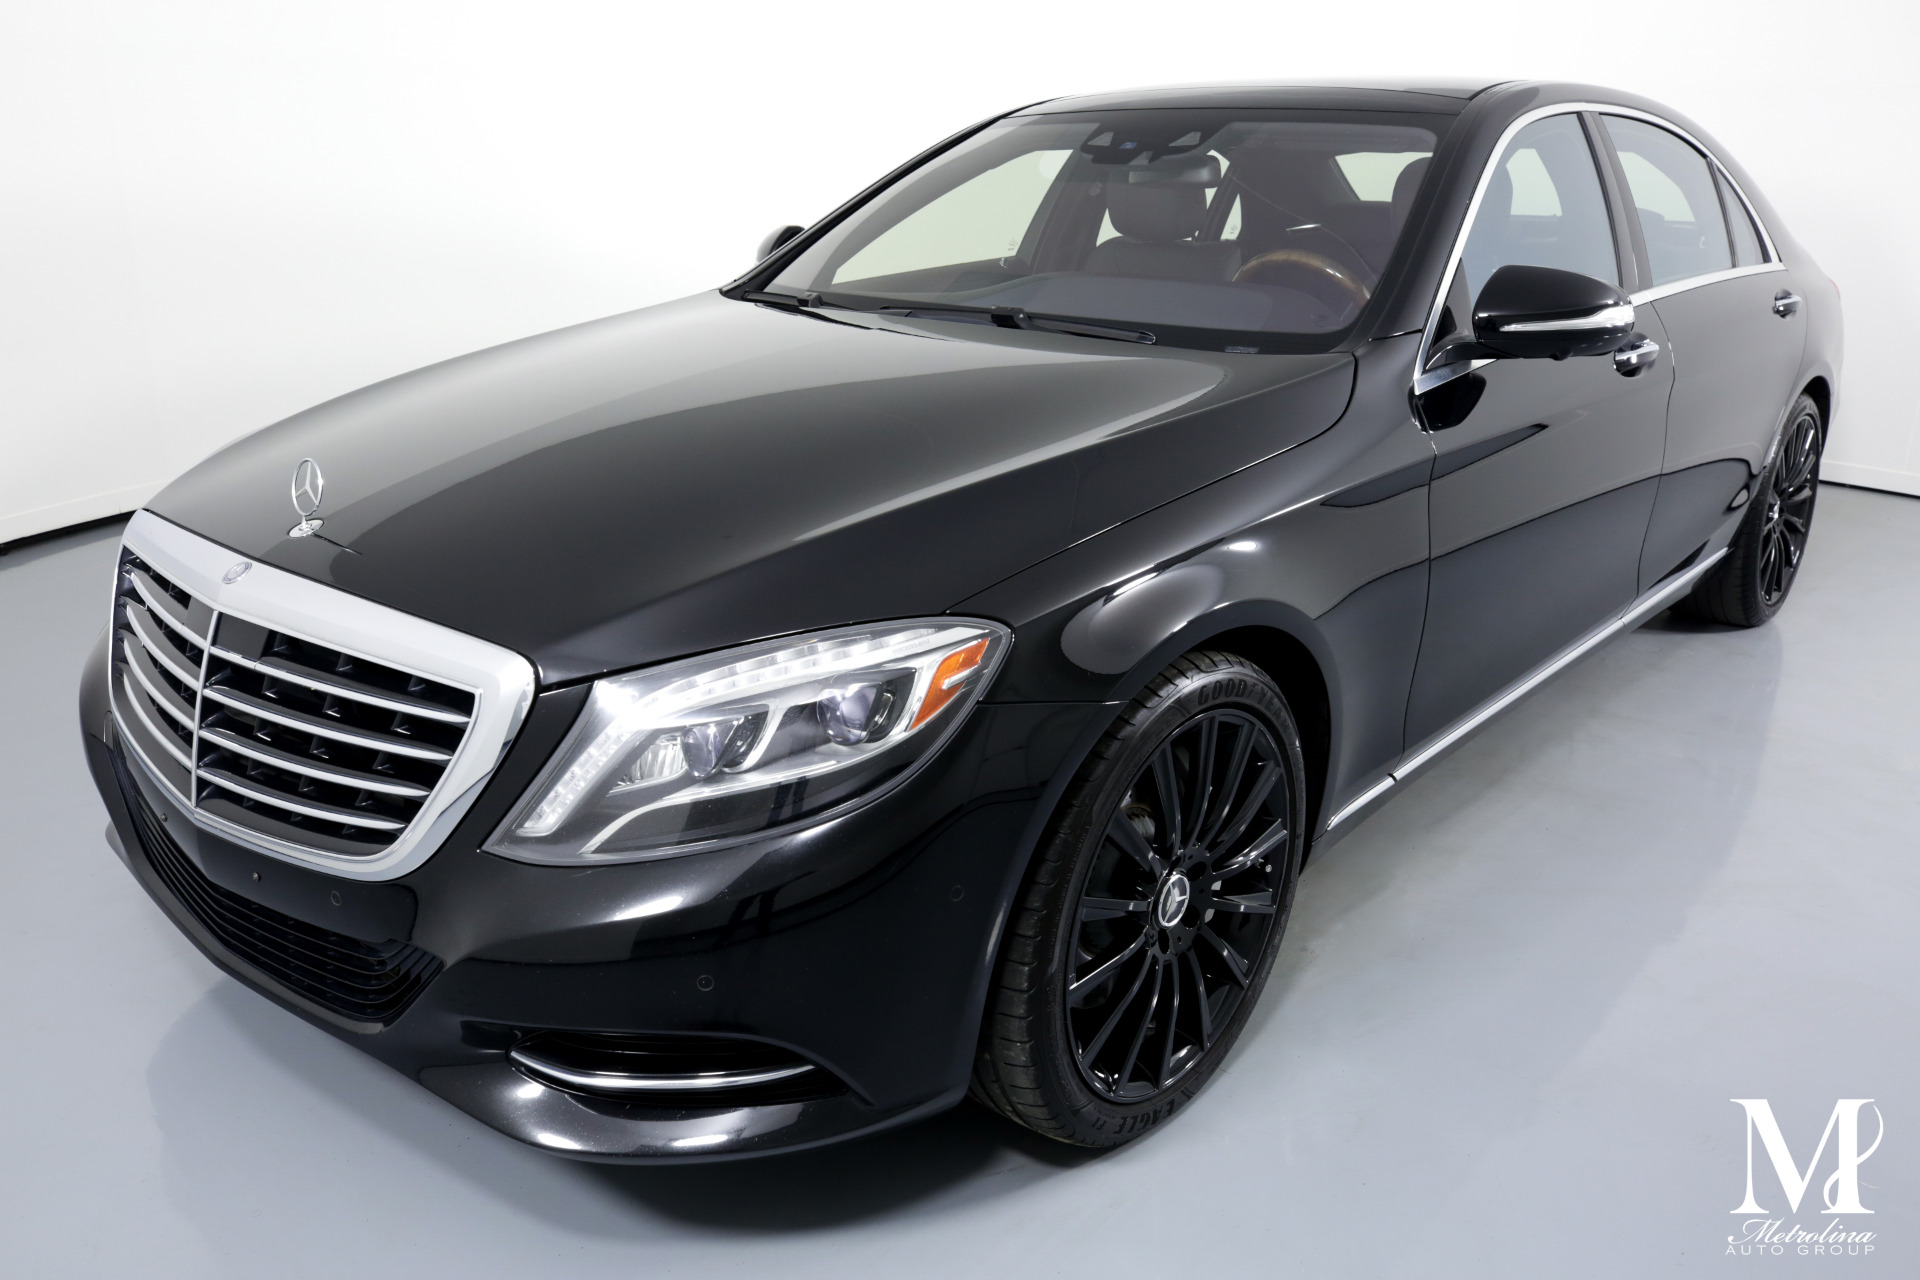 Used 2014 Mercedes-Benz S-Class S 550 for sale Sold at Metrolina Auto Group in Charlotte NC 28217 - 4